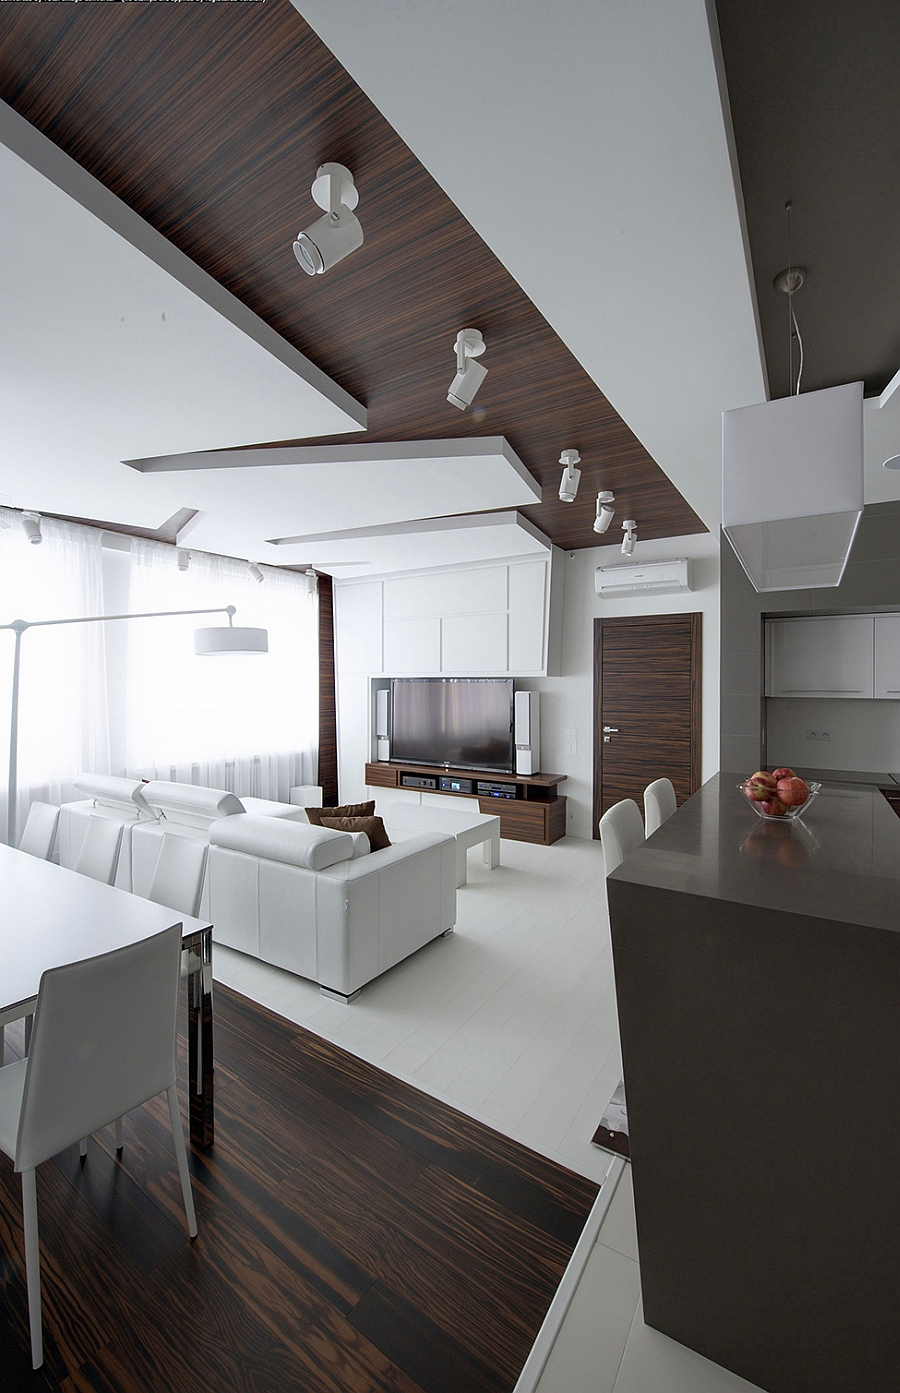 Minimal living space in white with wooden accents